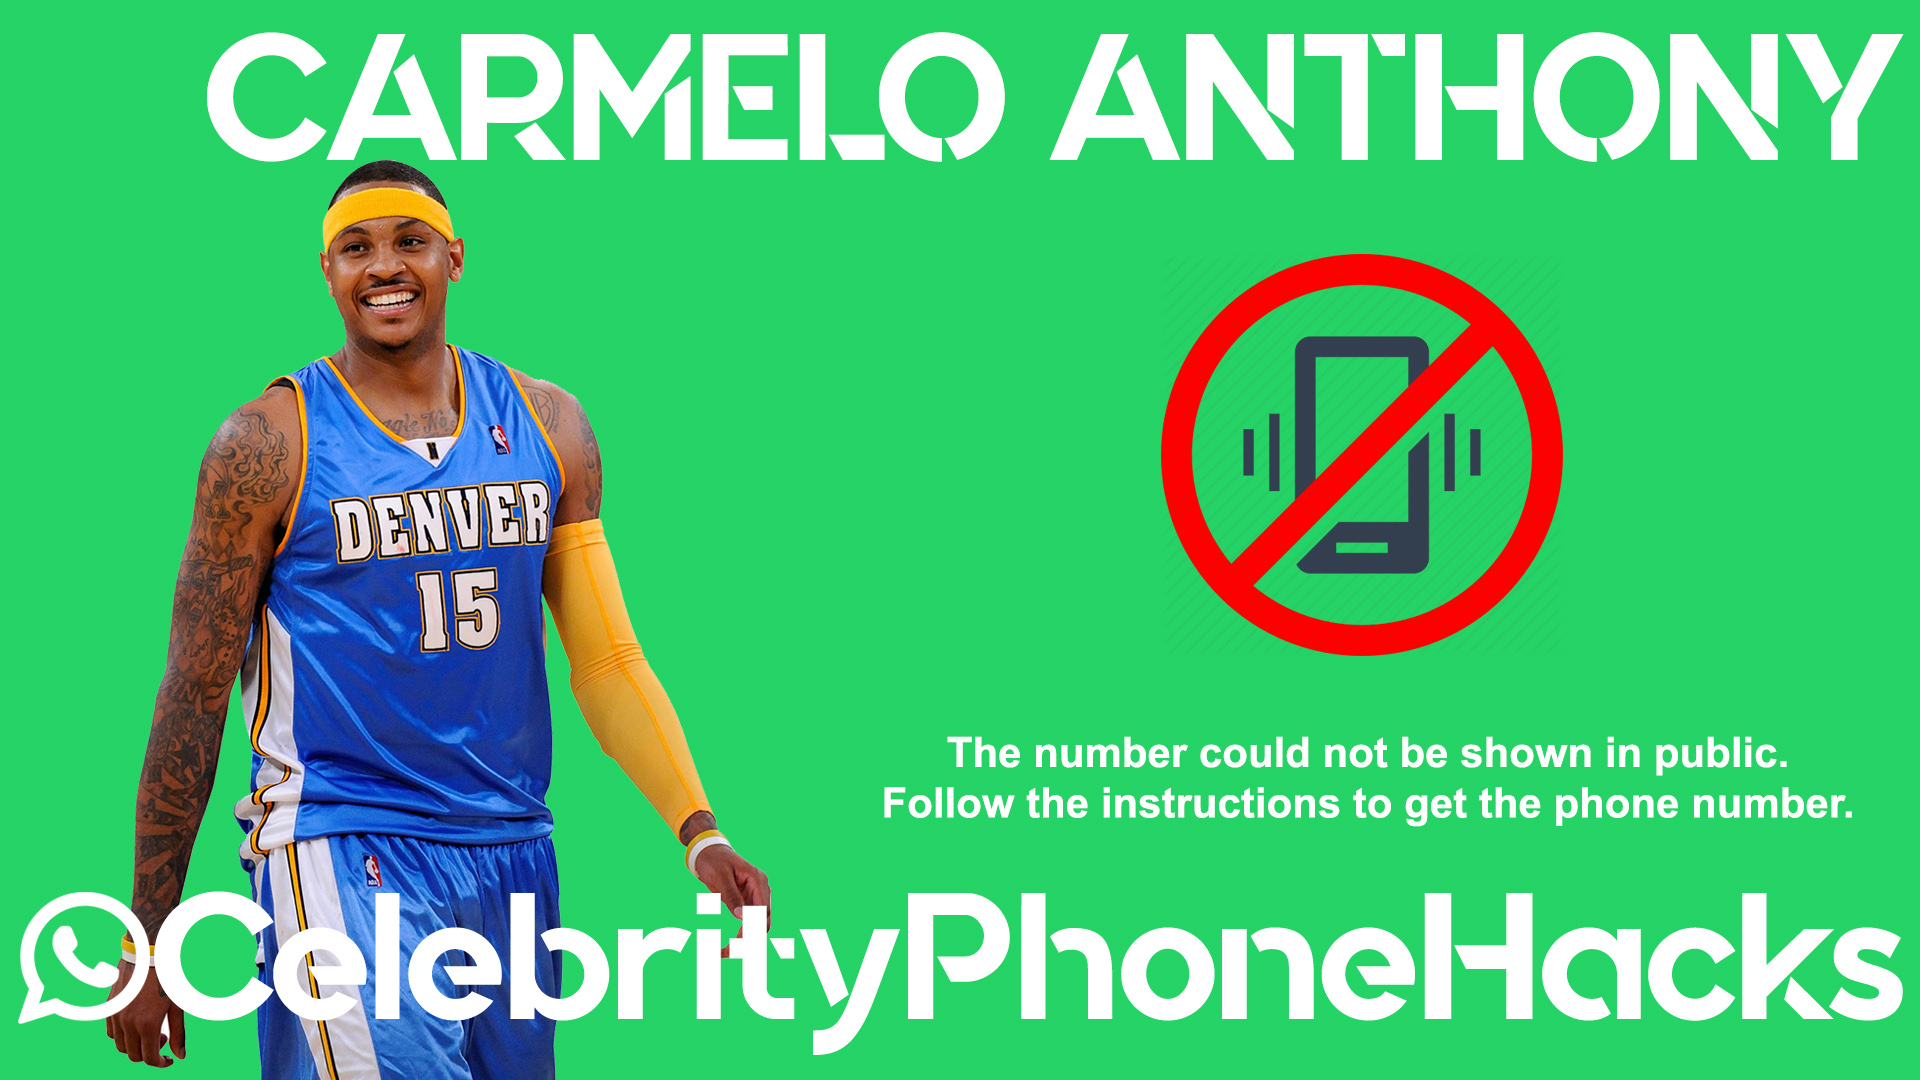 Carmelo Anthony real phone number 2019 whatsapp hacked leaked